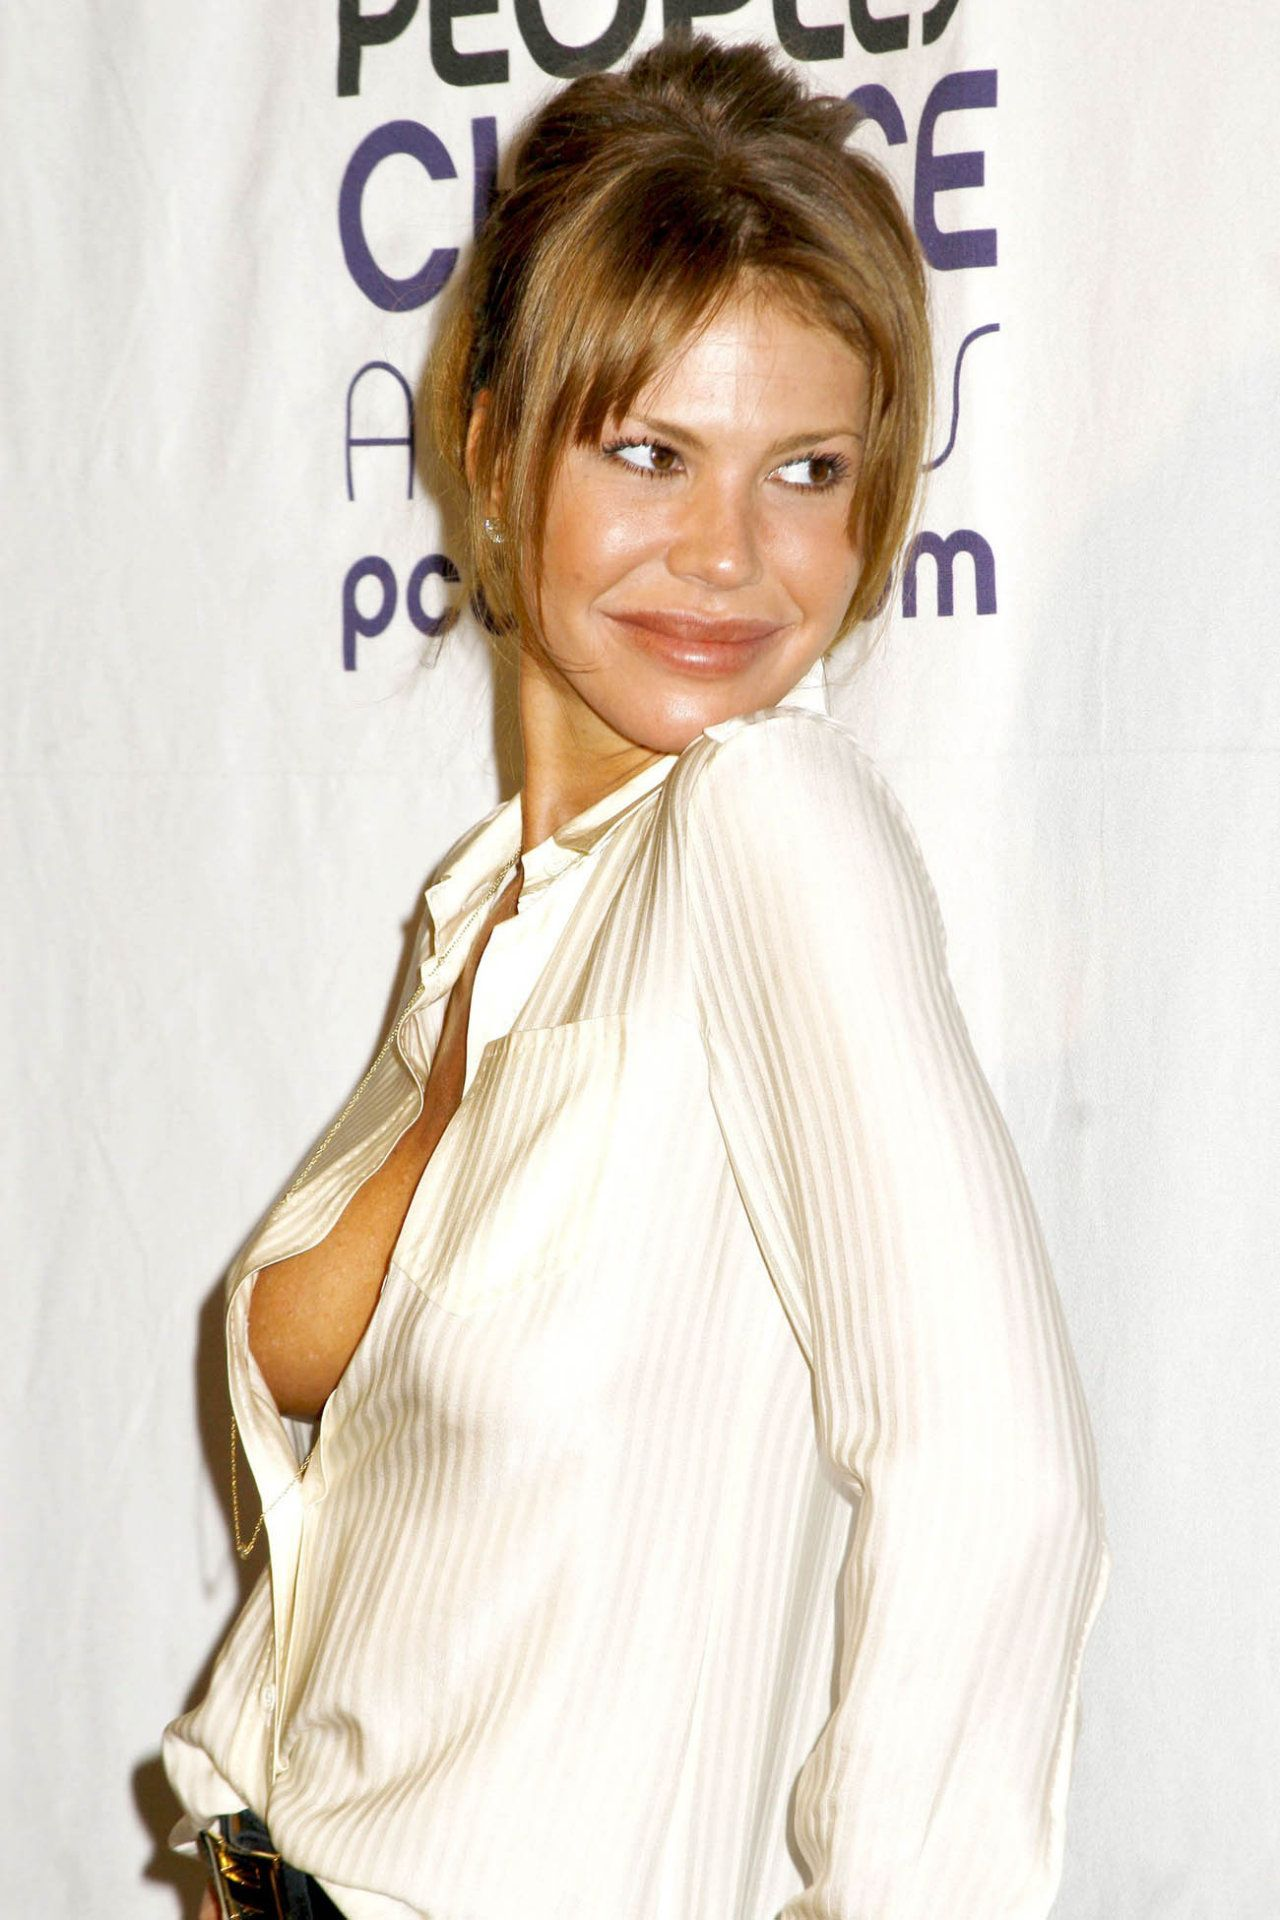 Nikki Cox After Plastic Surgery Oops